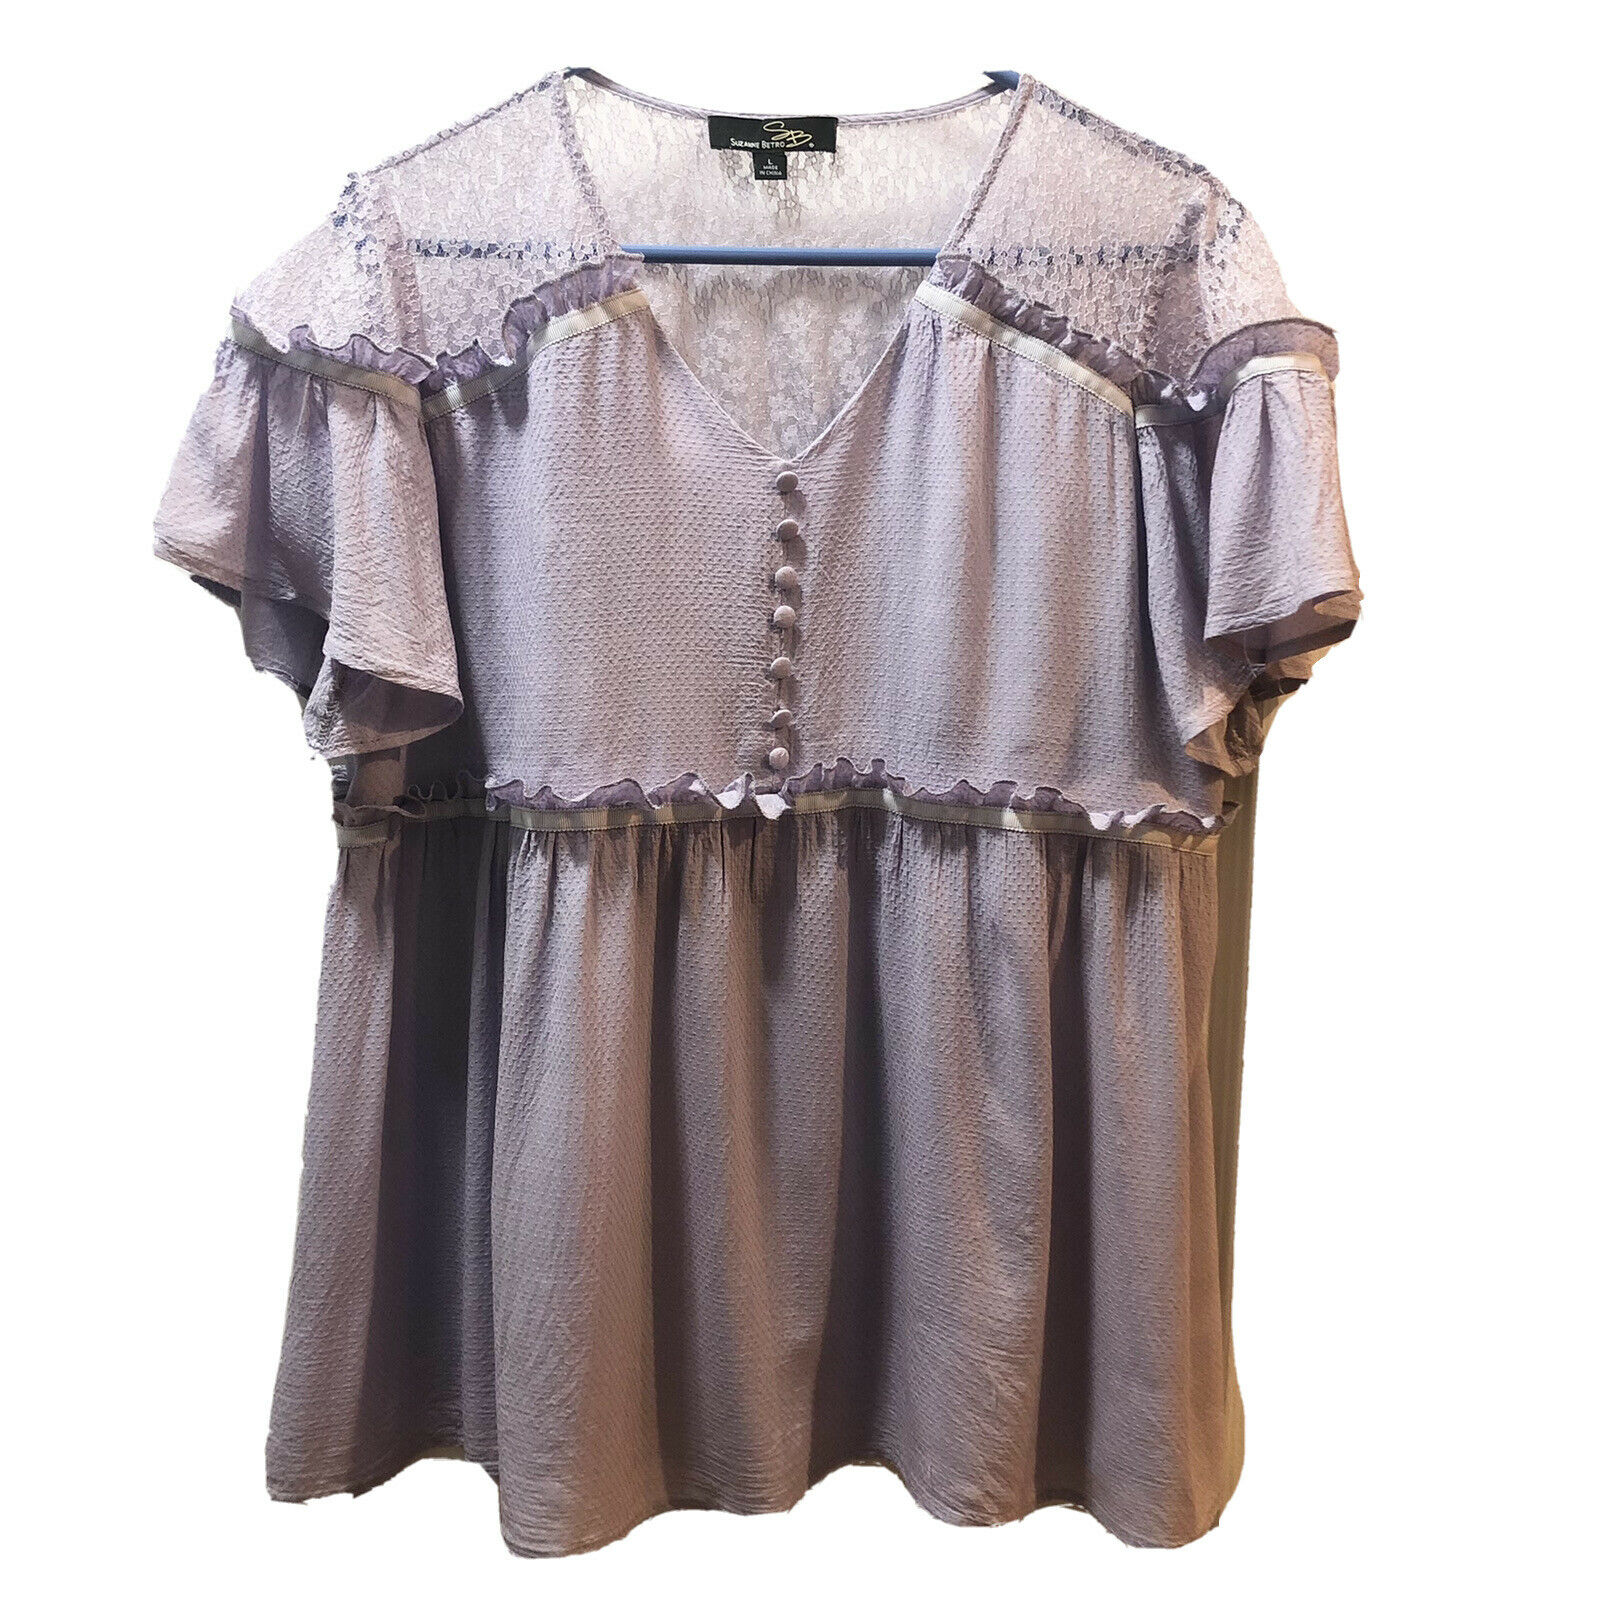 Suzanne Betro Womens Lilac Lace Ruffle Flowy Blou… - image 1